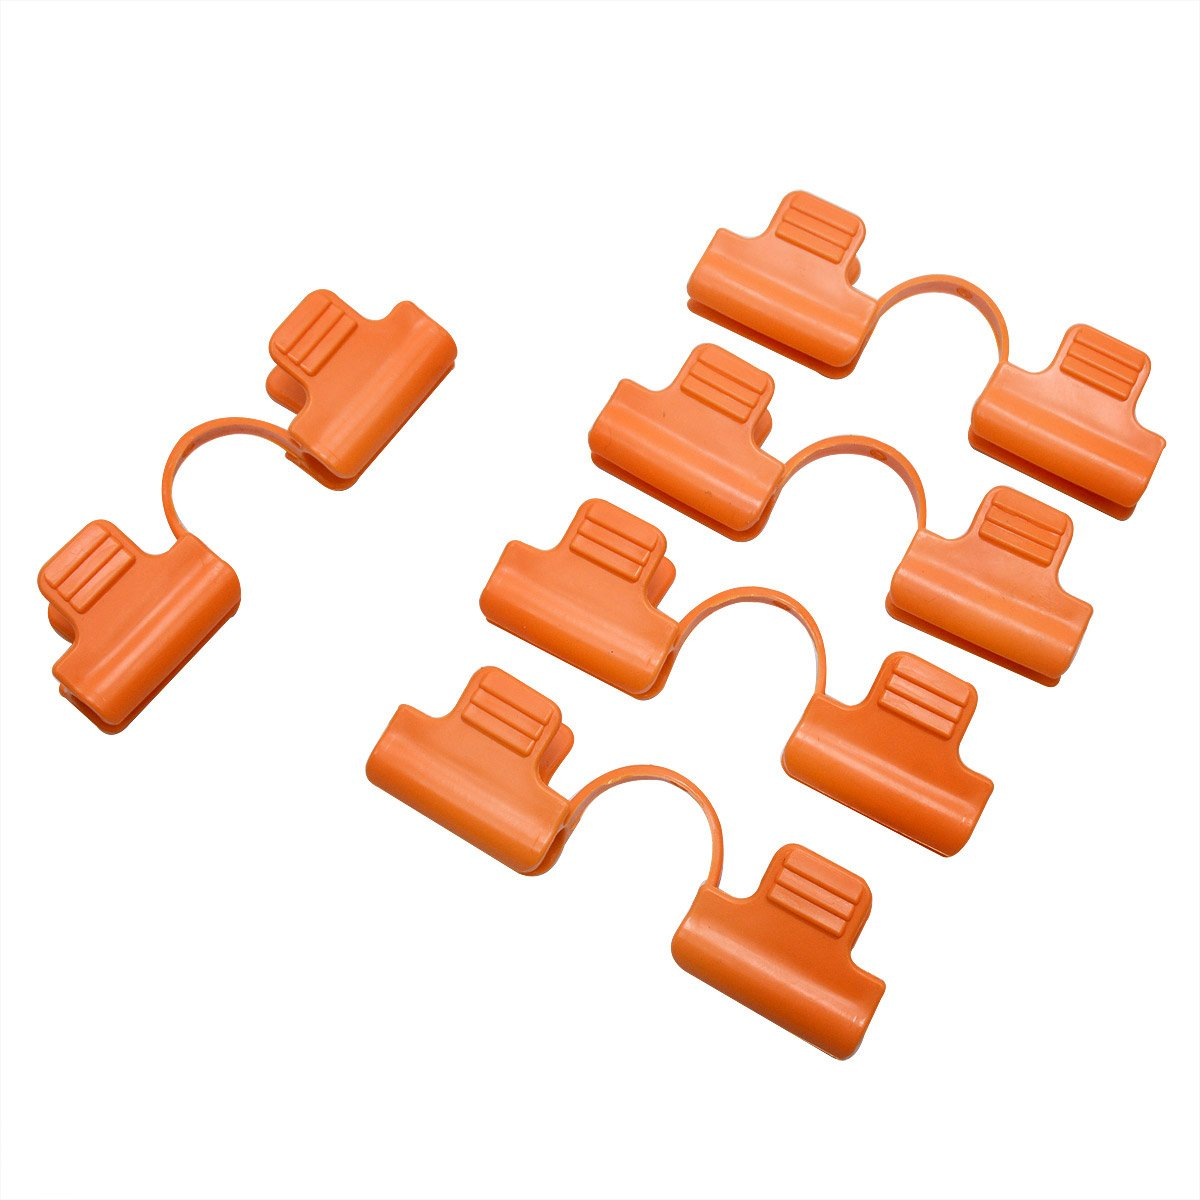 12Pcs Garden Hoop Clips Snap Clamp Netting Cover Trellis for 11MM Plant Stakes by Gardeningwill (Image #1)